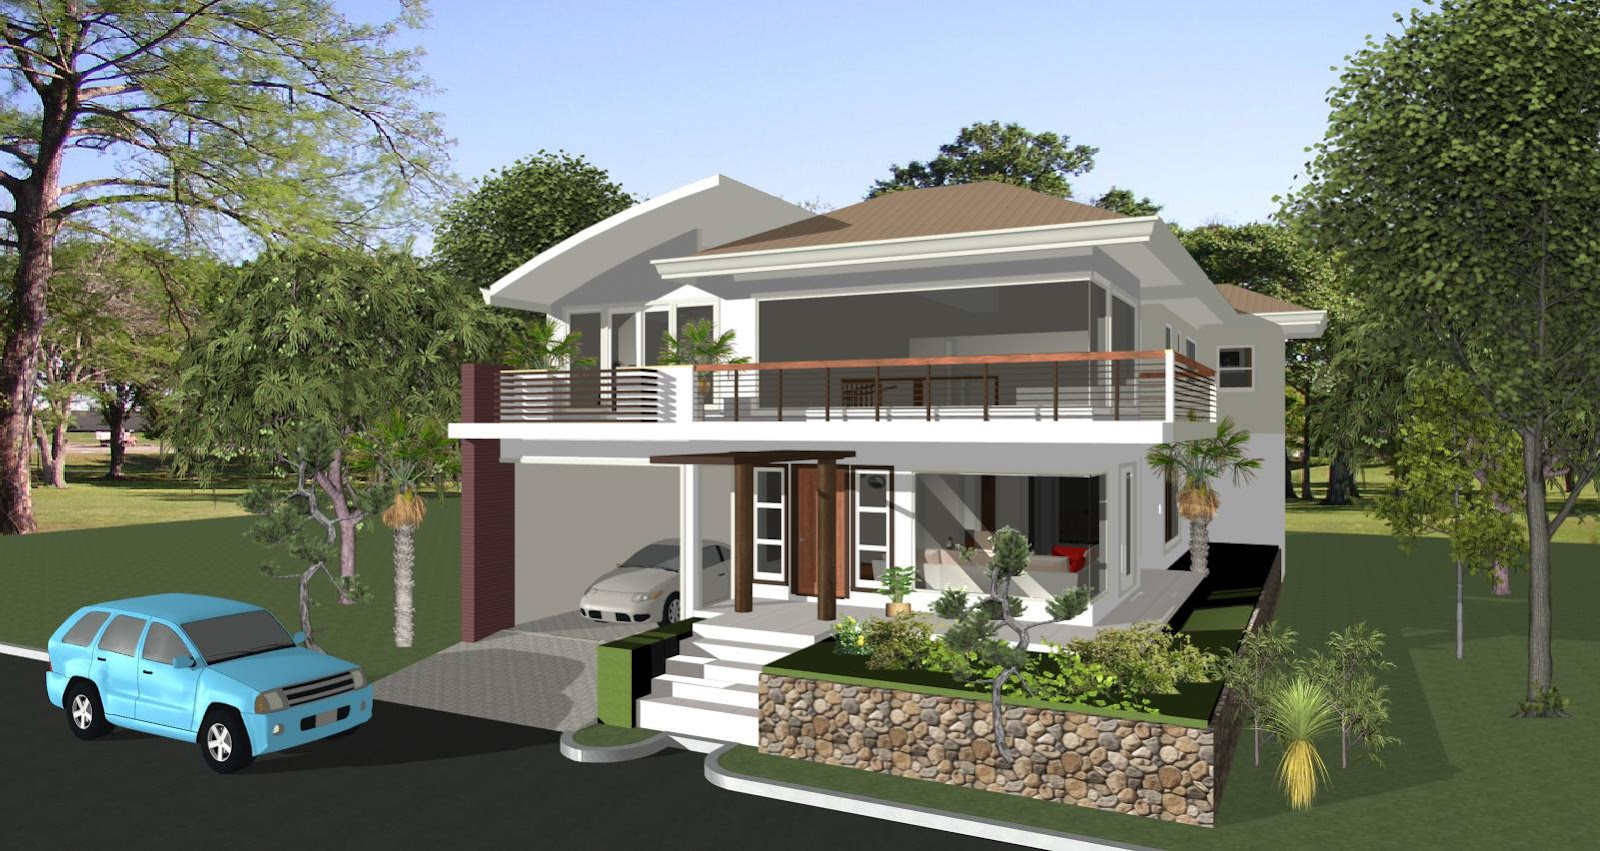 House designs philippines architect bill house plans for New construction design ideas